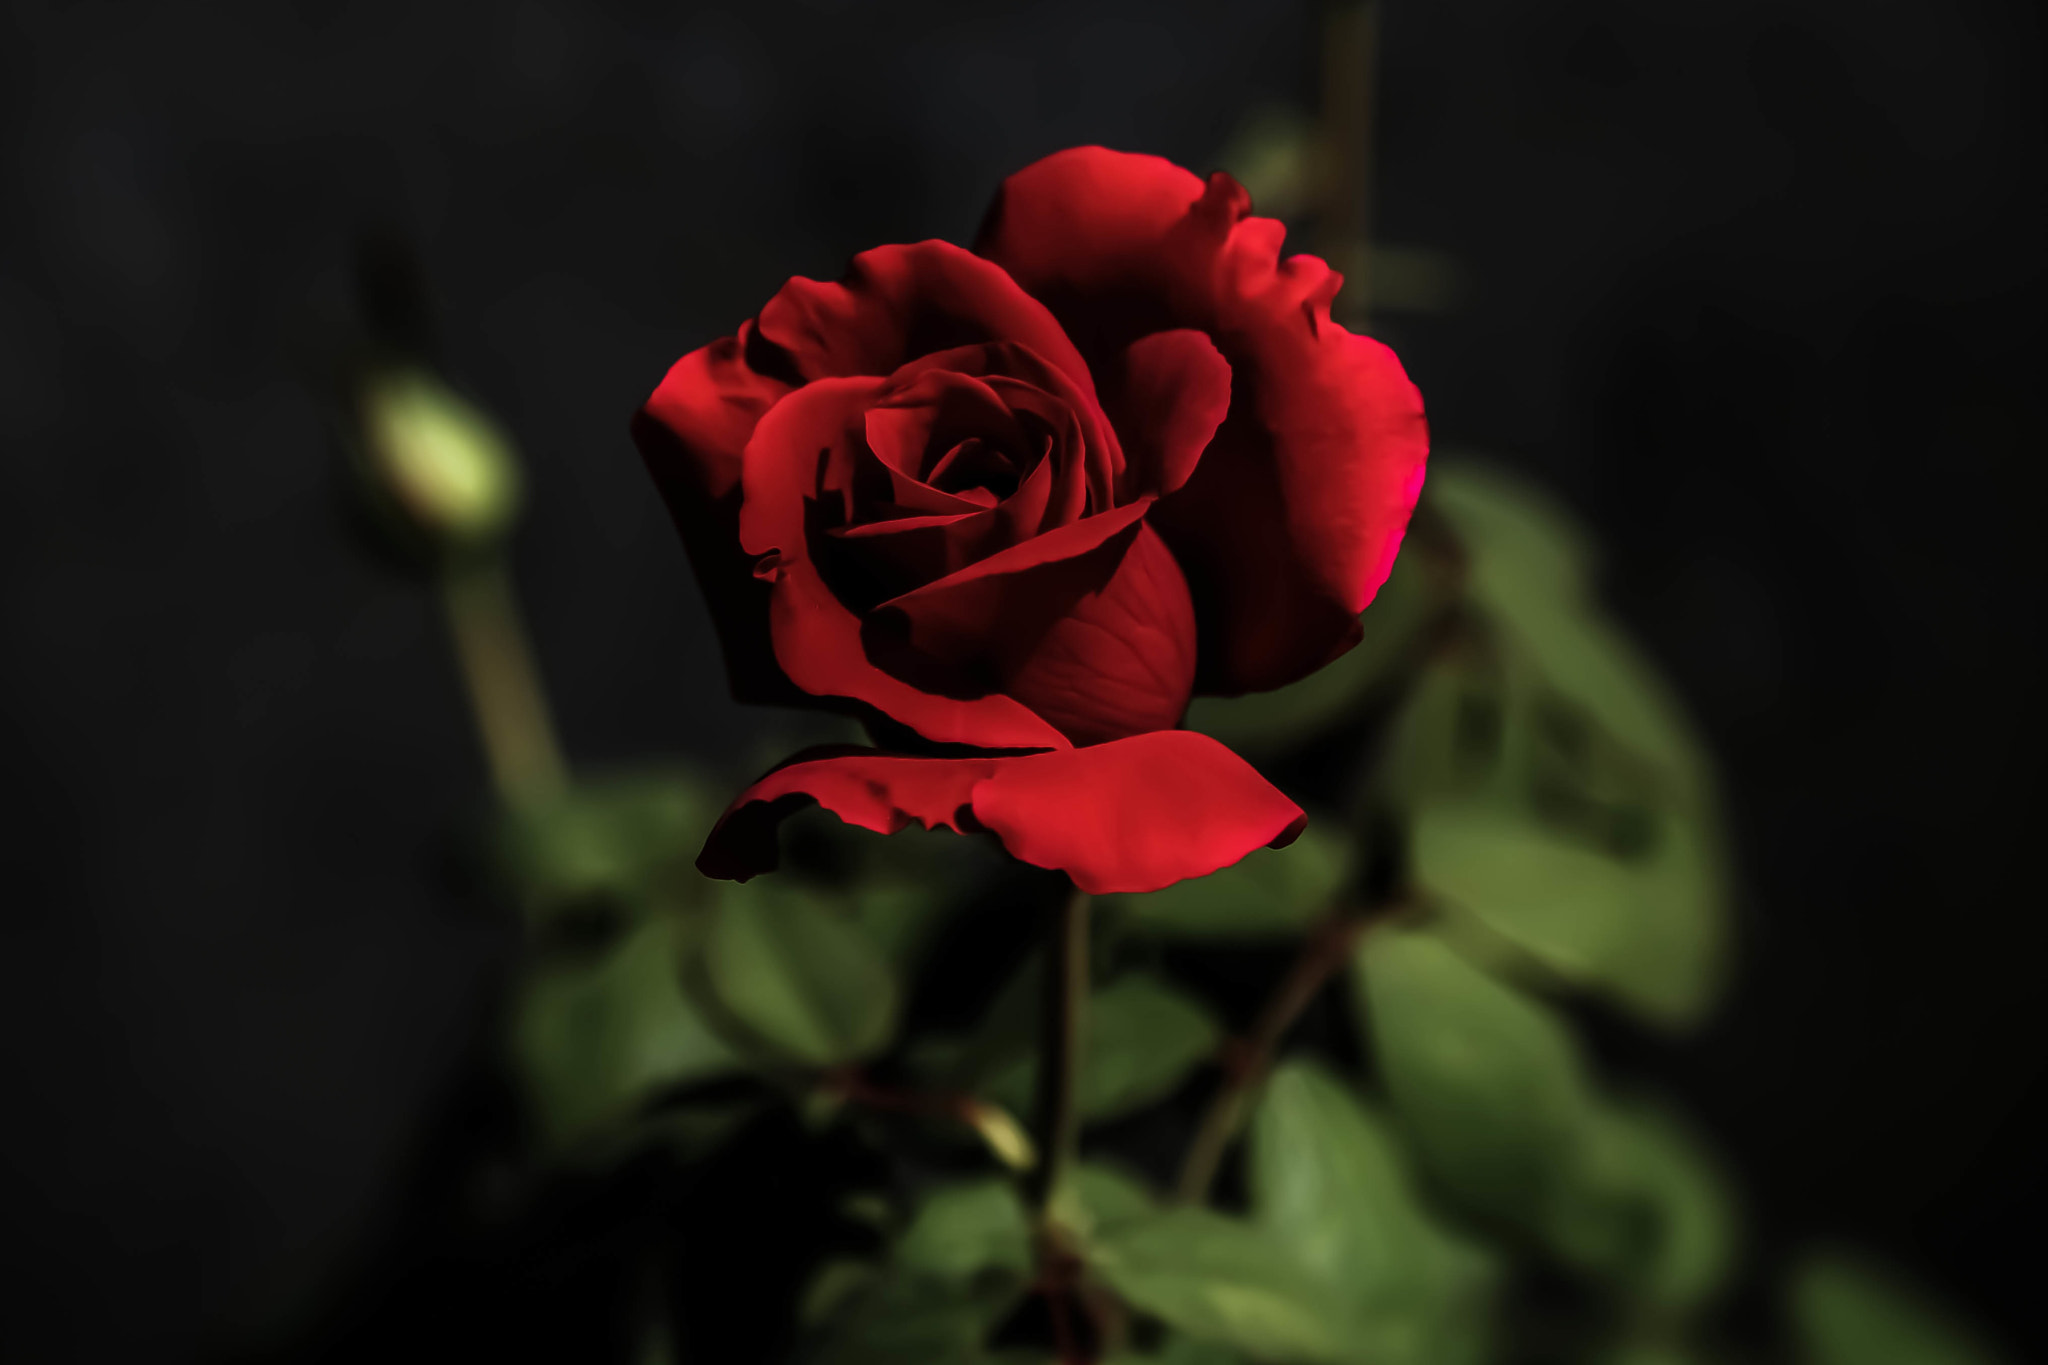 Photograph Rose by Howard Bond on 500px